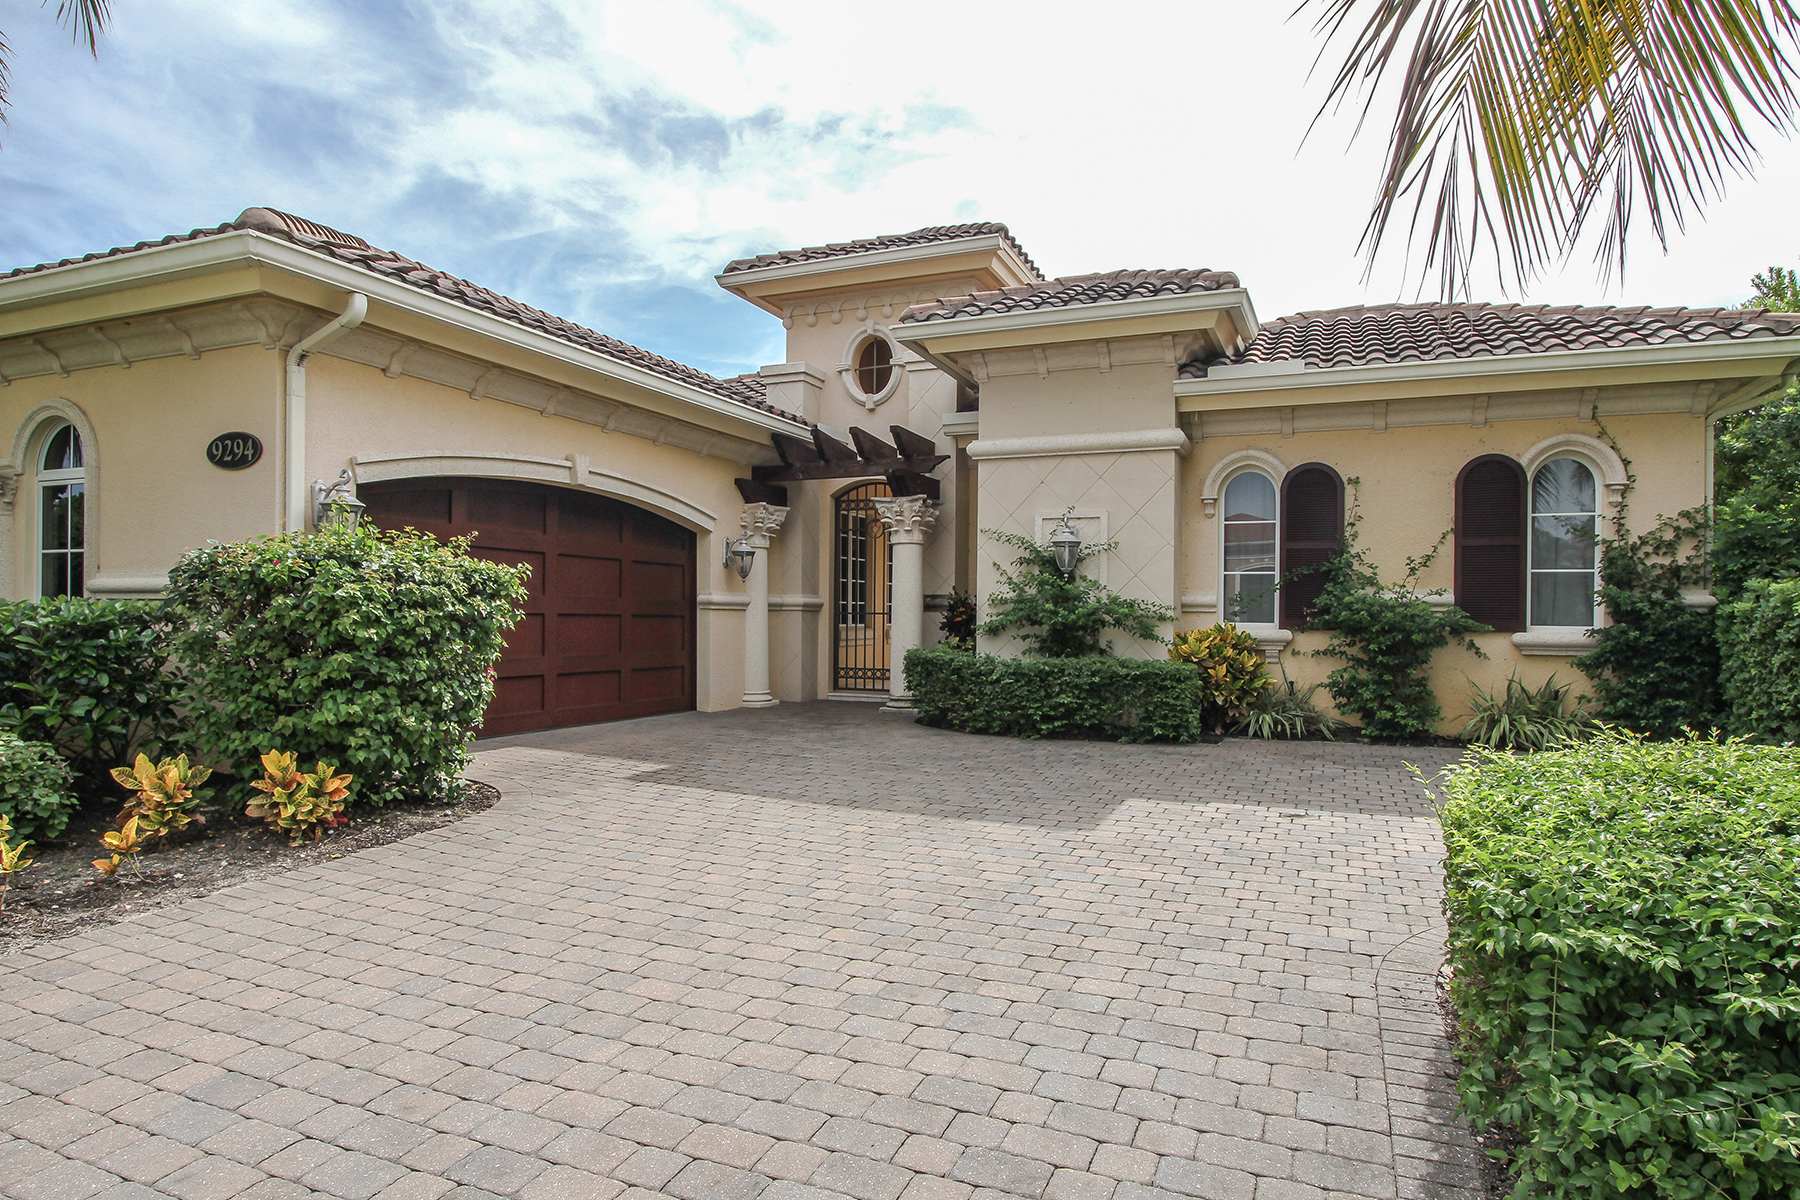 Single Family Home for Rent at FIDDLERS CREEK - CHIASSO 9294 Chiasso Cove Ct, Naples, Florida 34114 United States